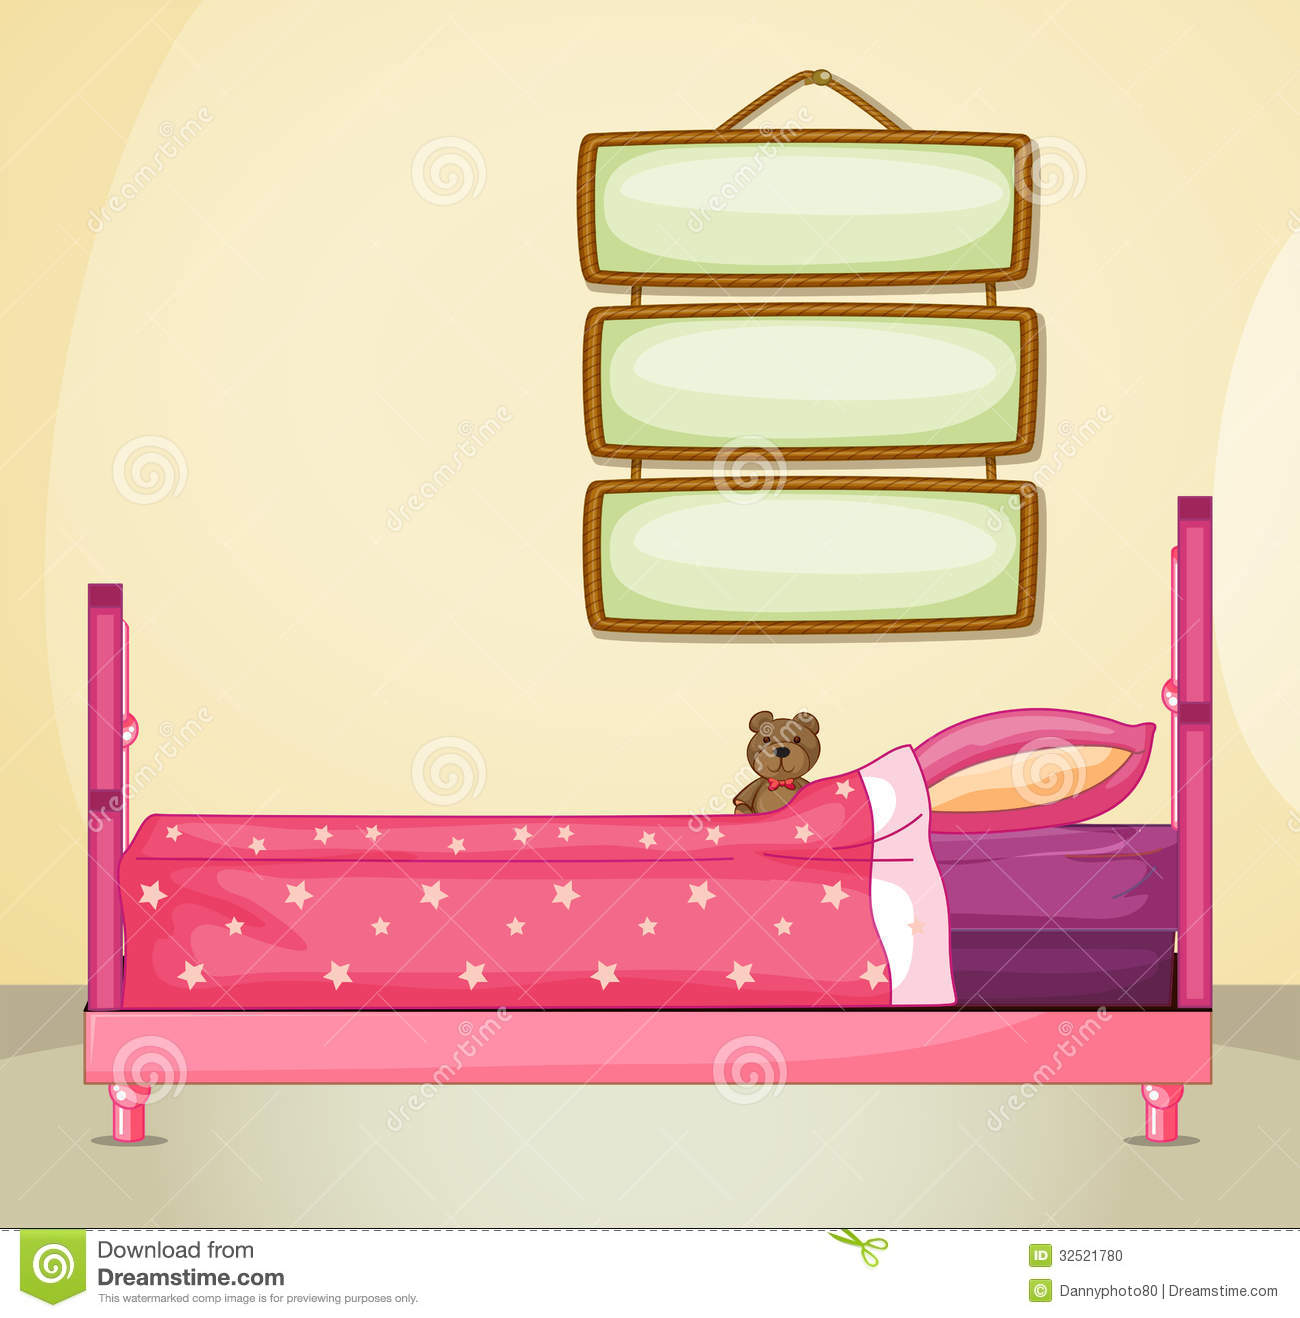 Hanging Signboards Inside A Room With A Pink Bed Stock ...